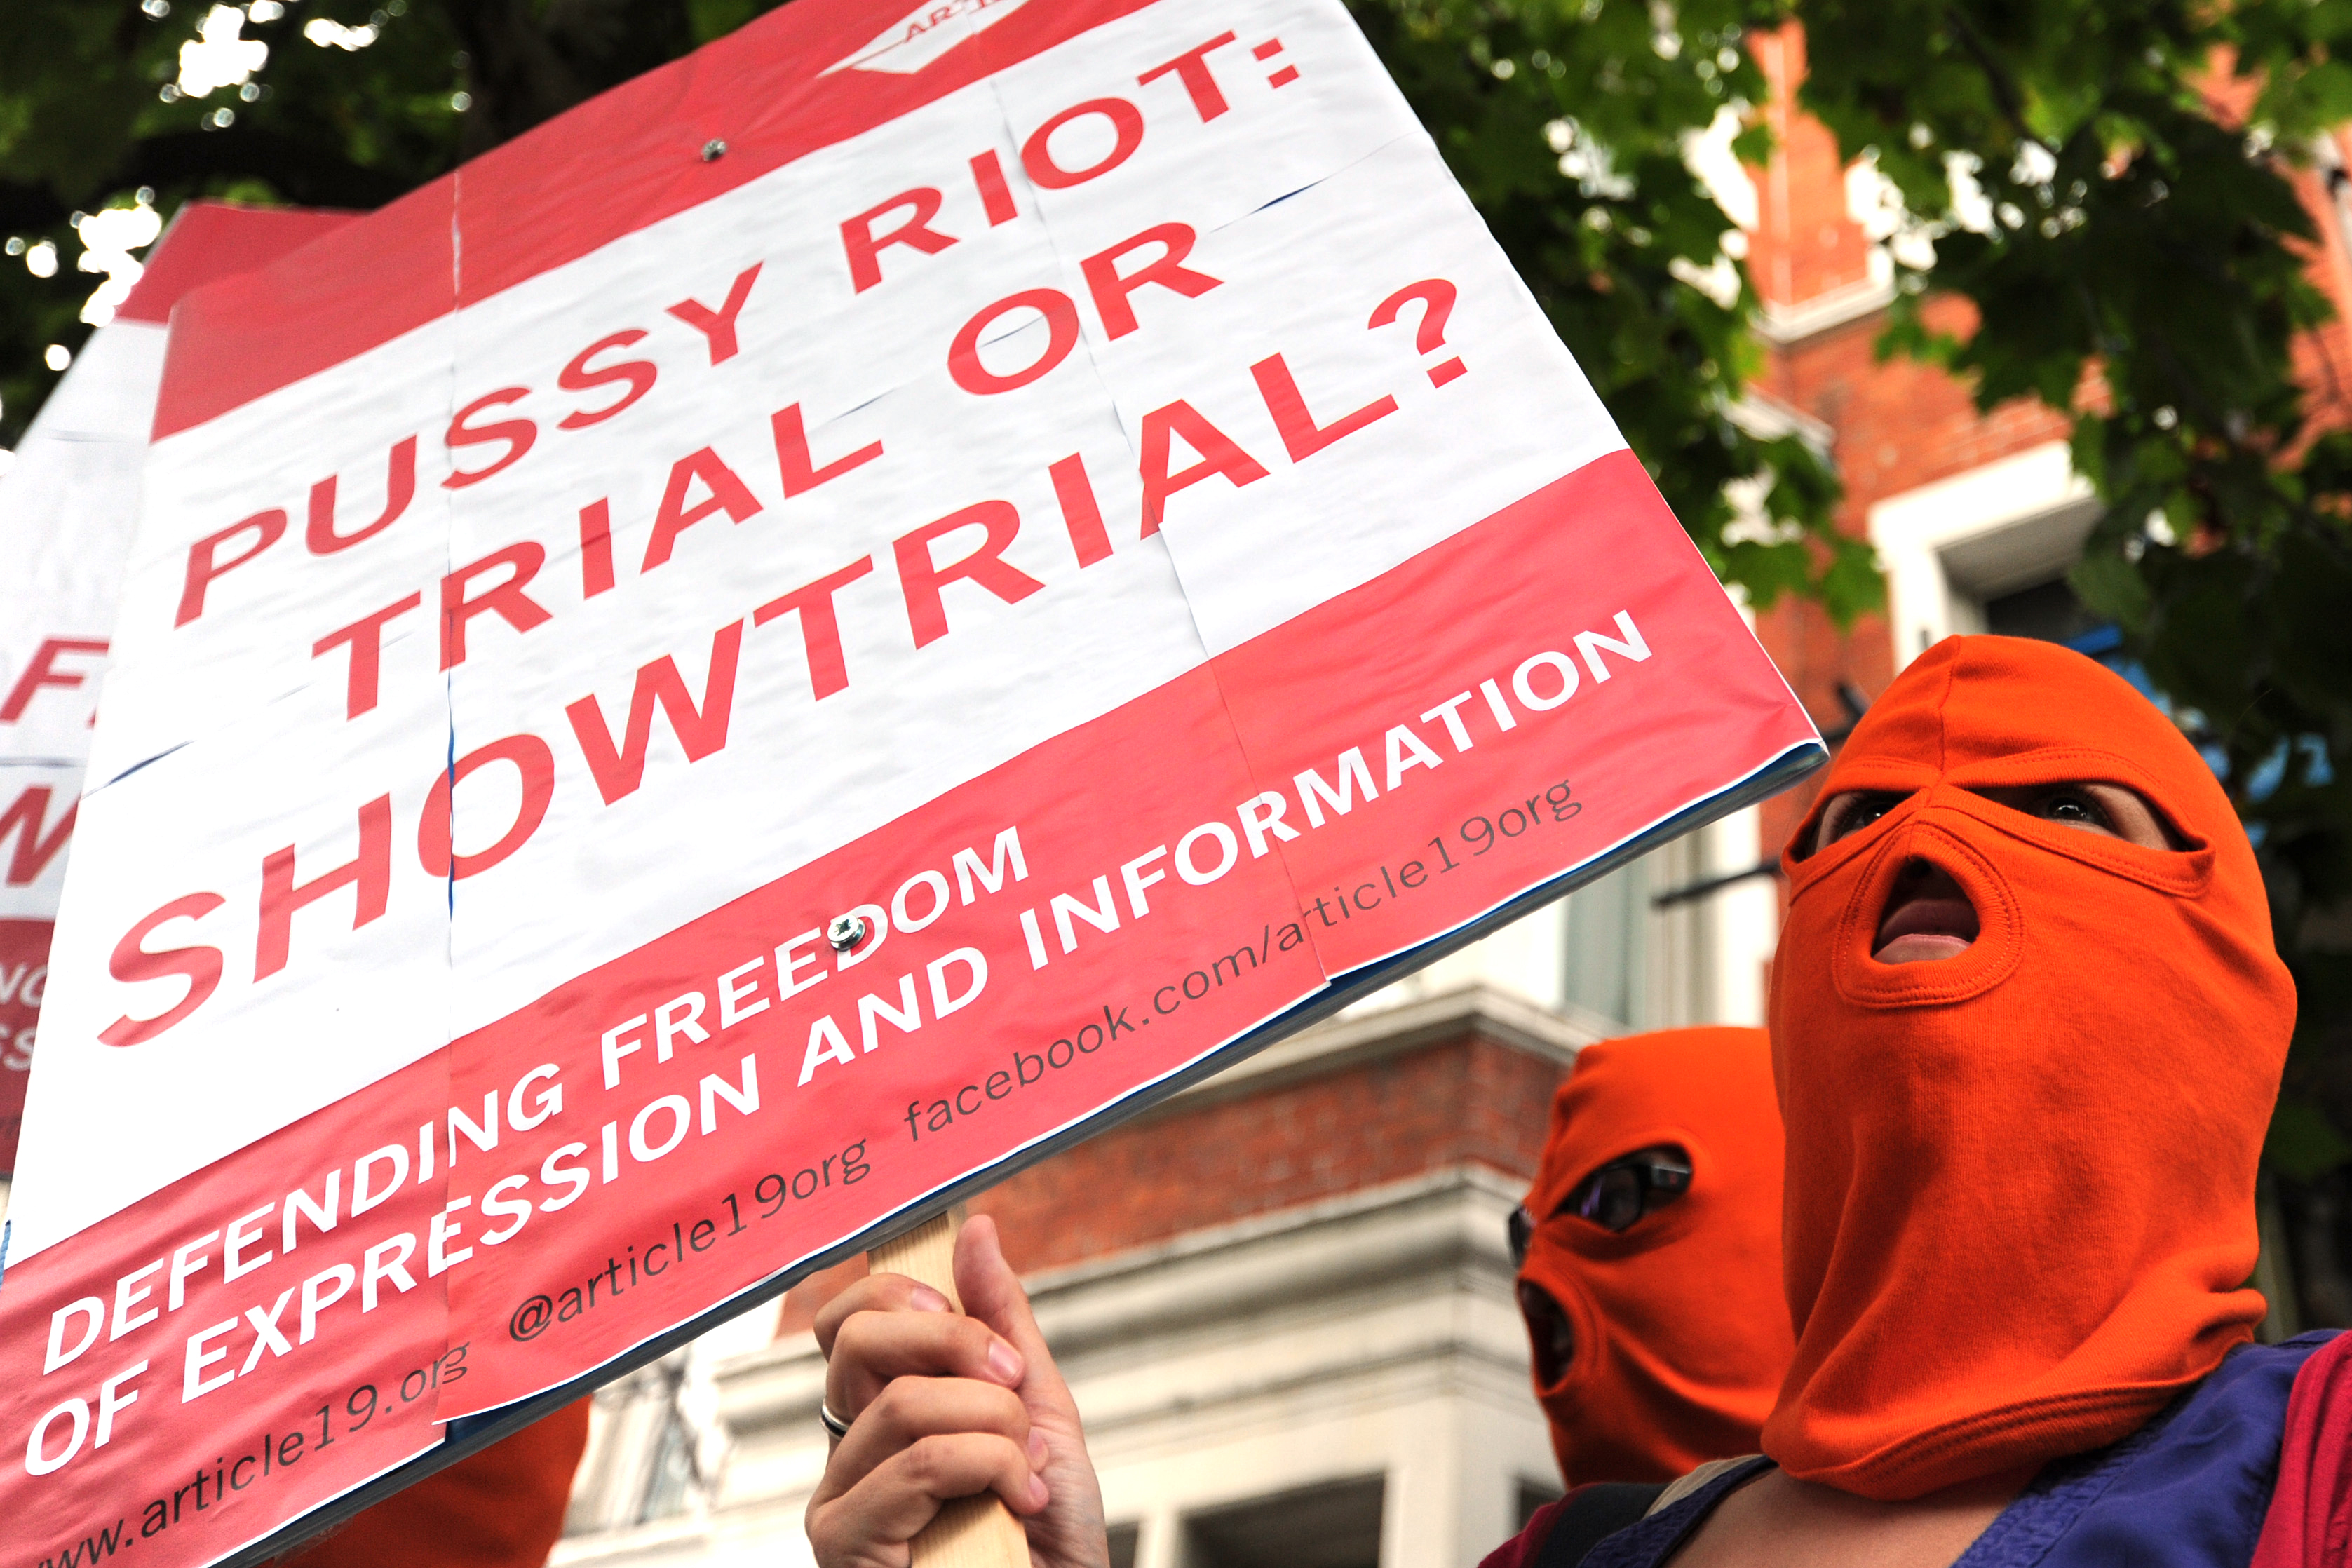 Protesters congregate near the Russian Embassy in London.